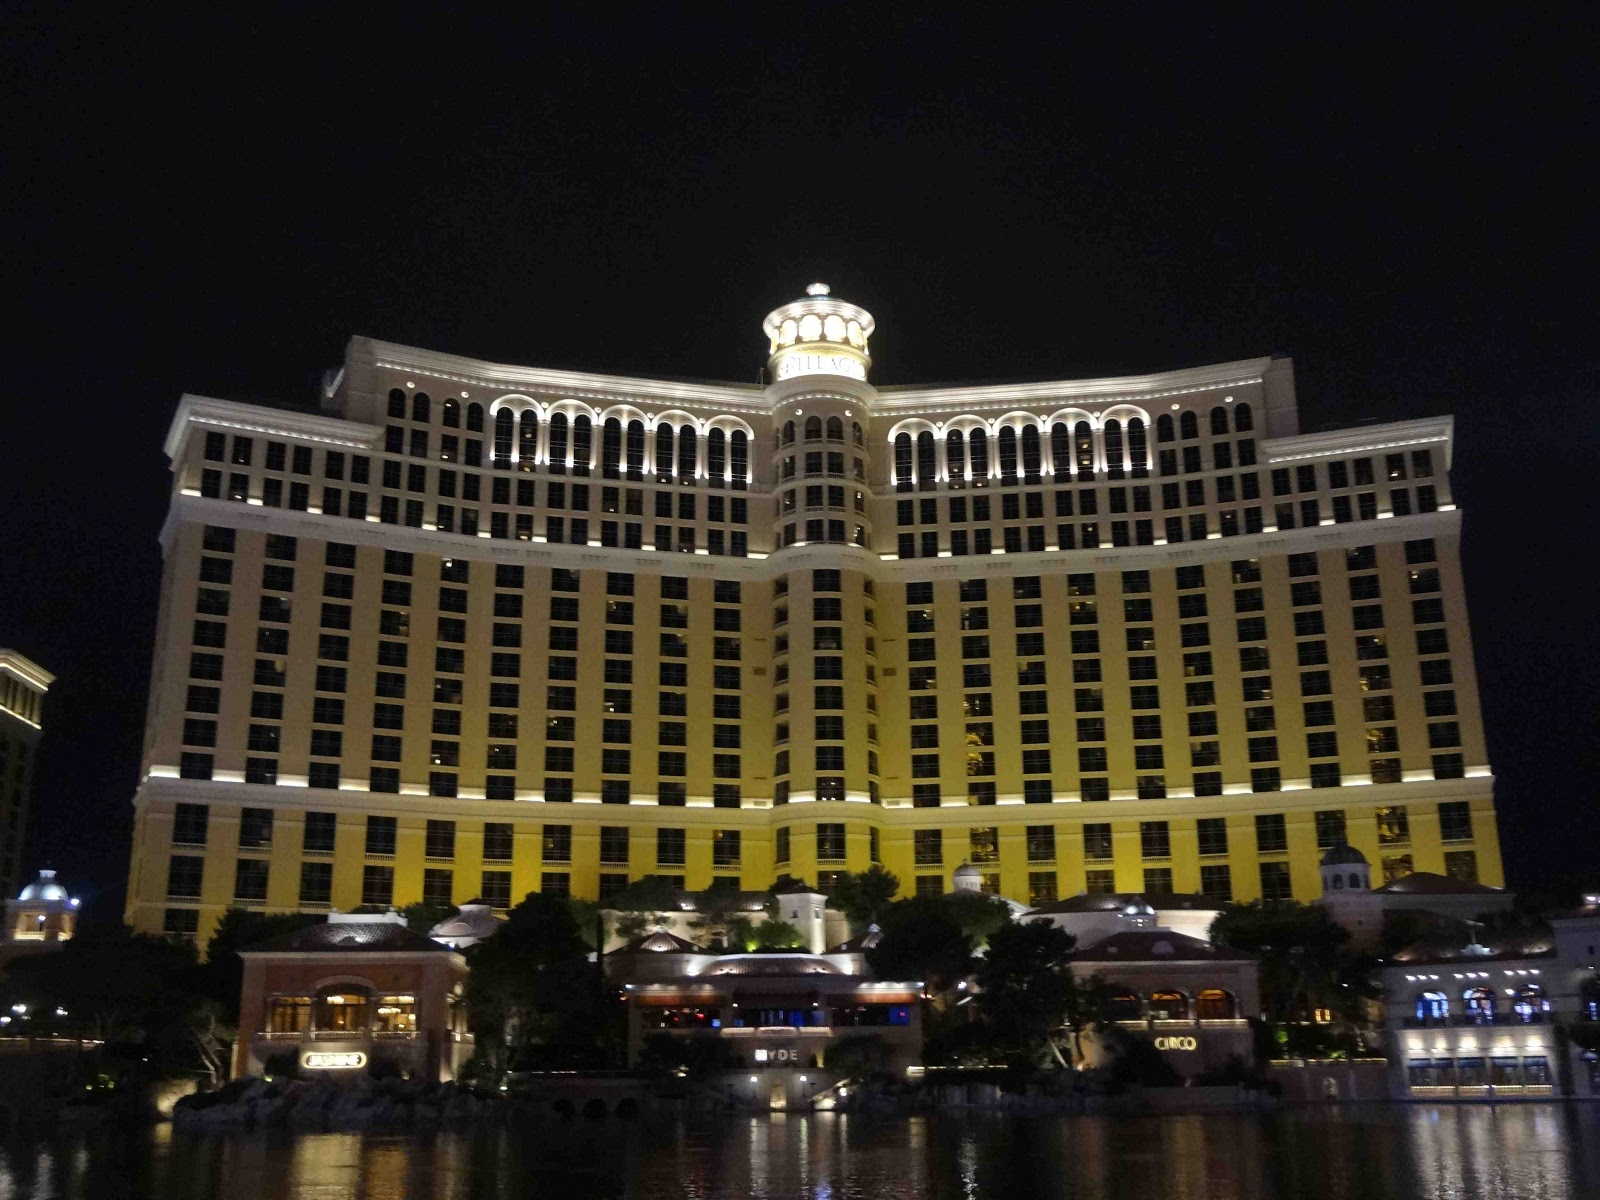 Bellagio hotel and casino booking michigan charity poker room rules